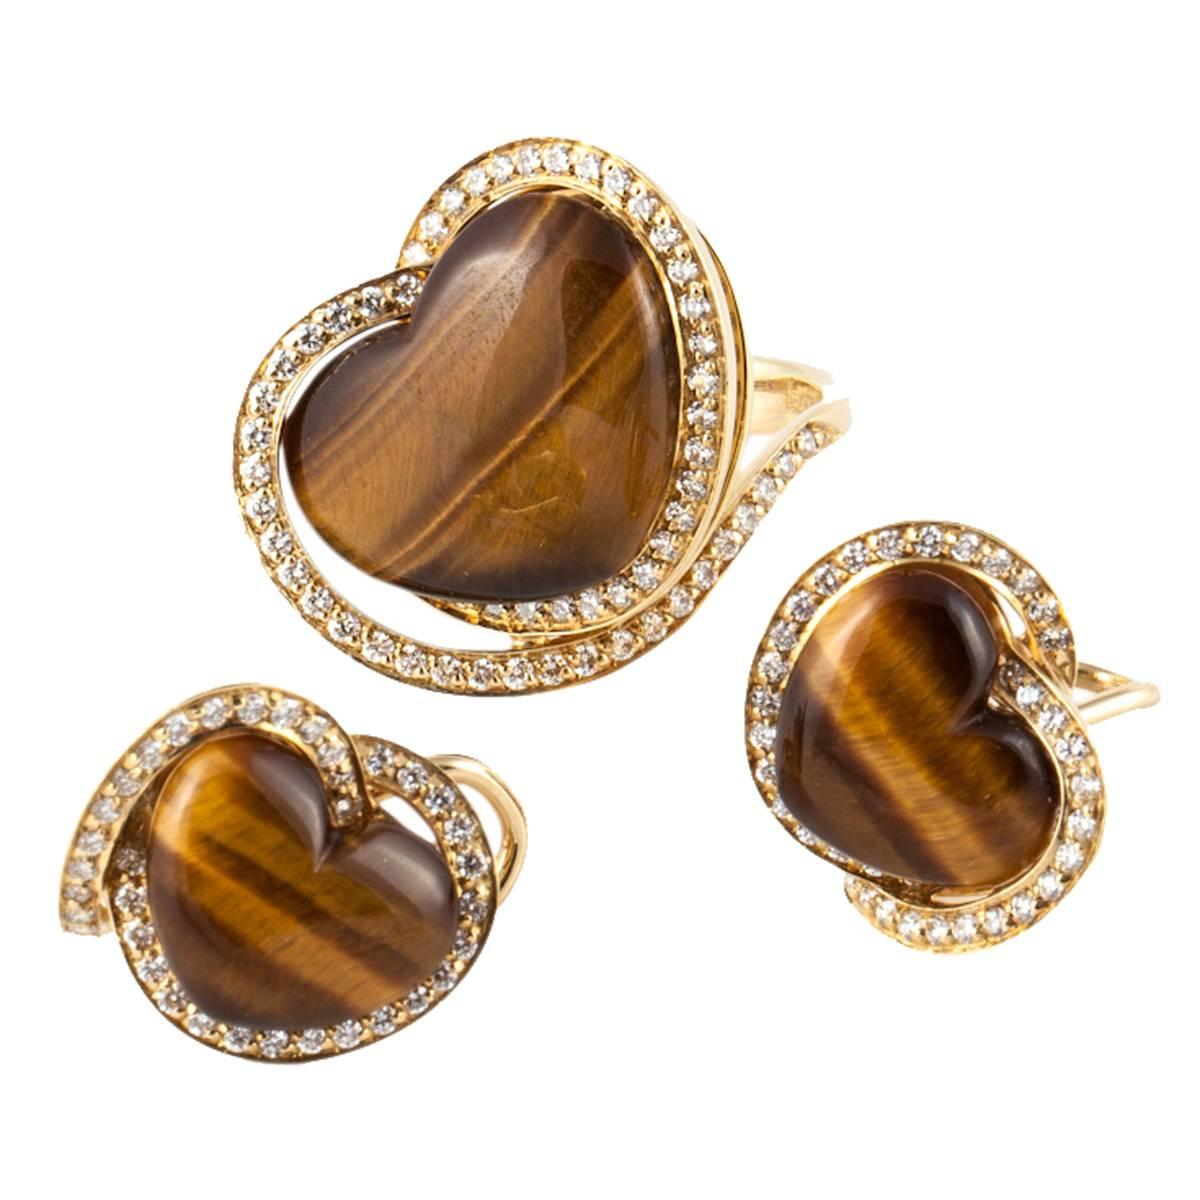 Roberto Coin 18K Yellow Gold Tiger's Eye Gold Ring and Earrings Set